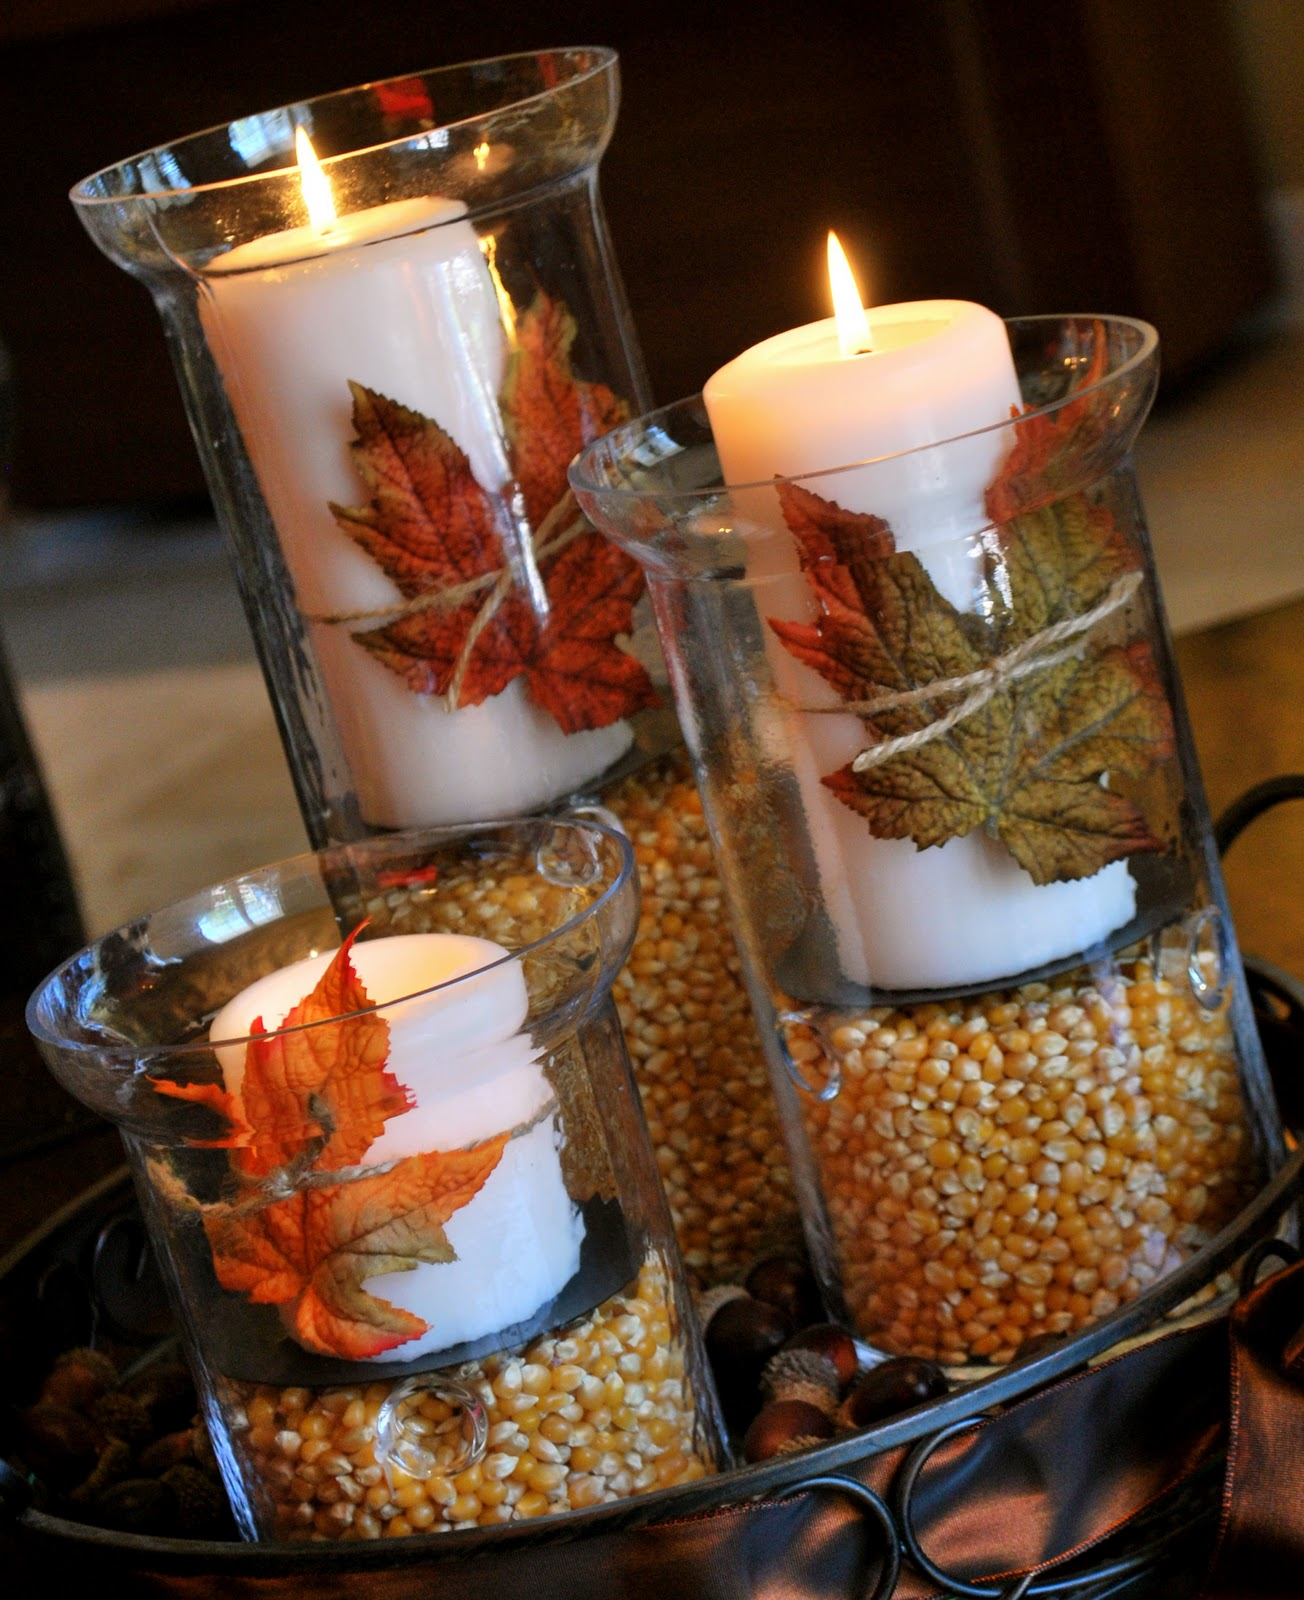 During the Thanksgiving season, it's fun to put together a series of fall décor to help liven up your home atmosphere. Such decorations can include anything from thanksgiving table décor to wall art to thanksgiving themed pillows or linens.